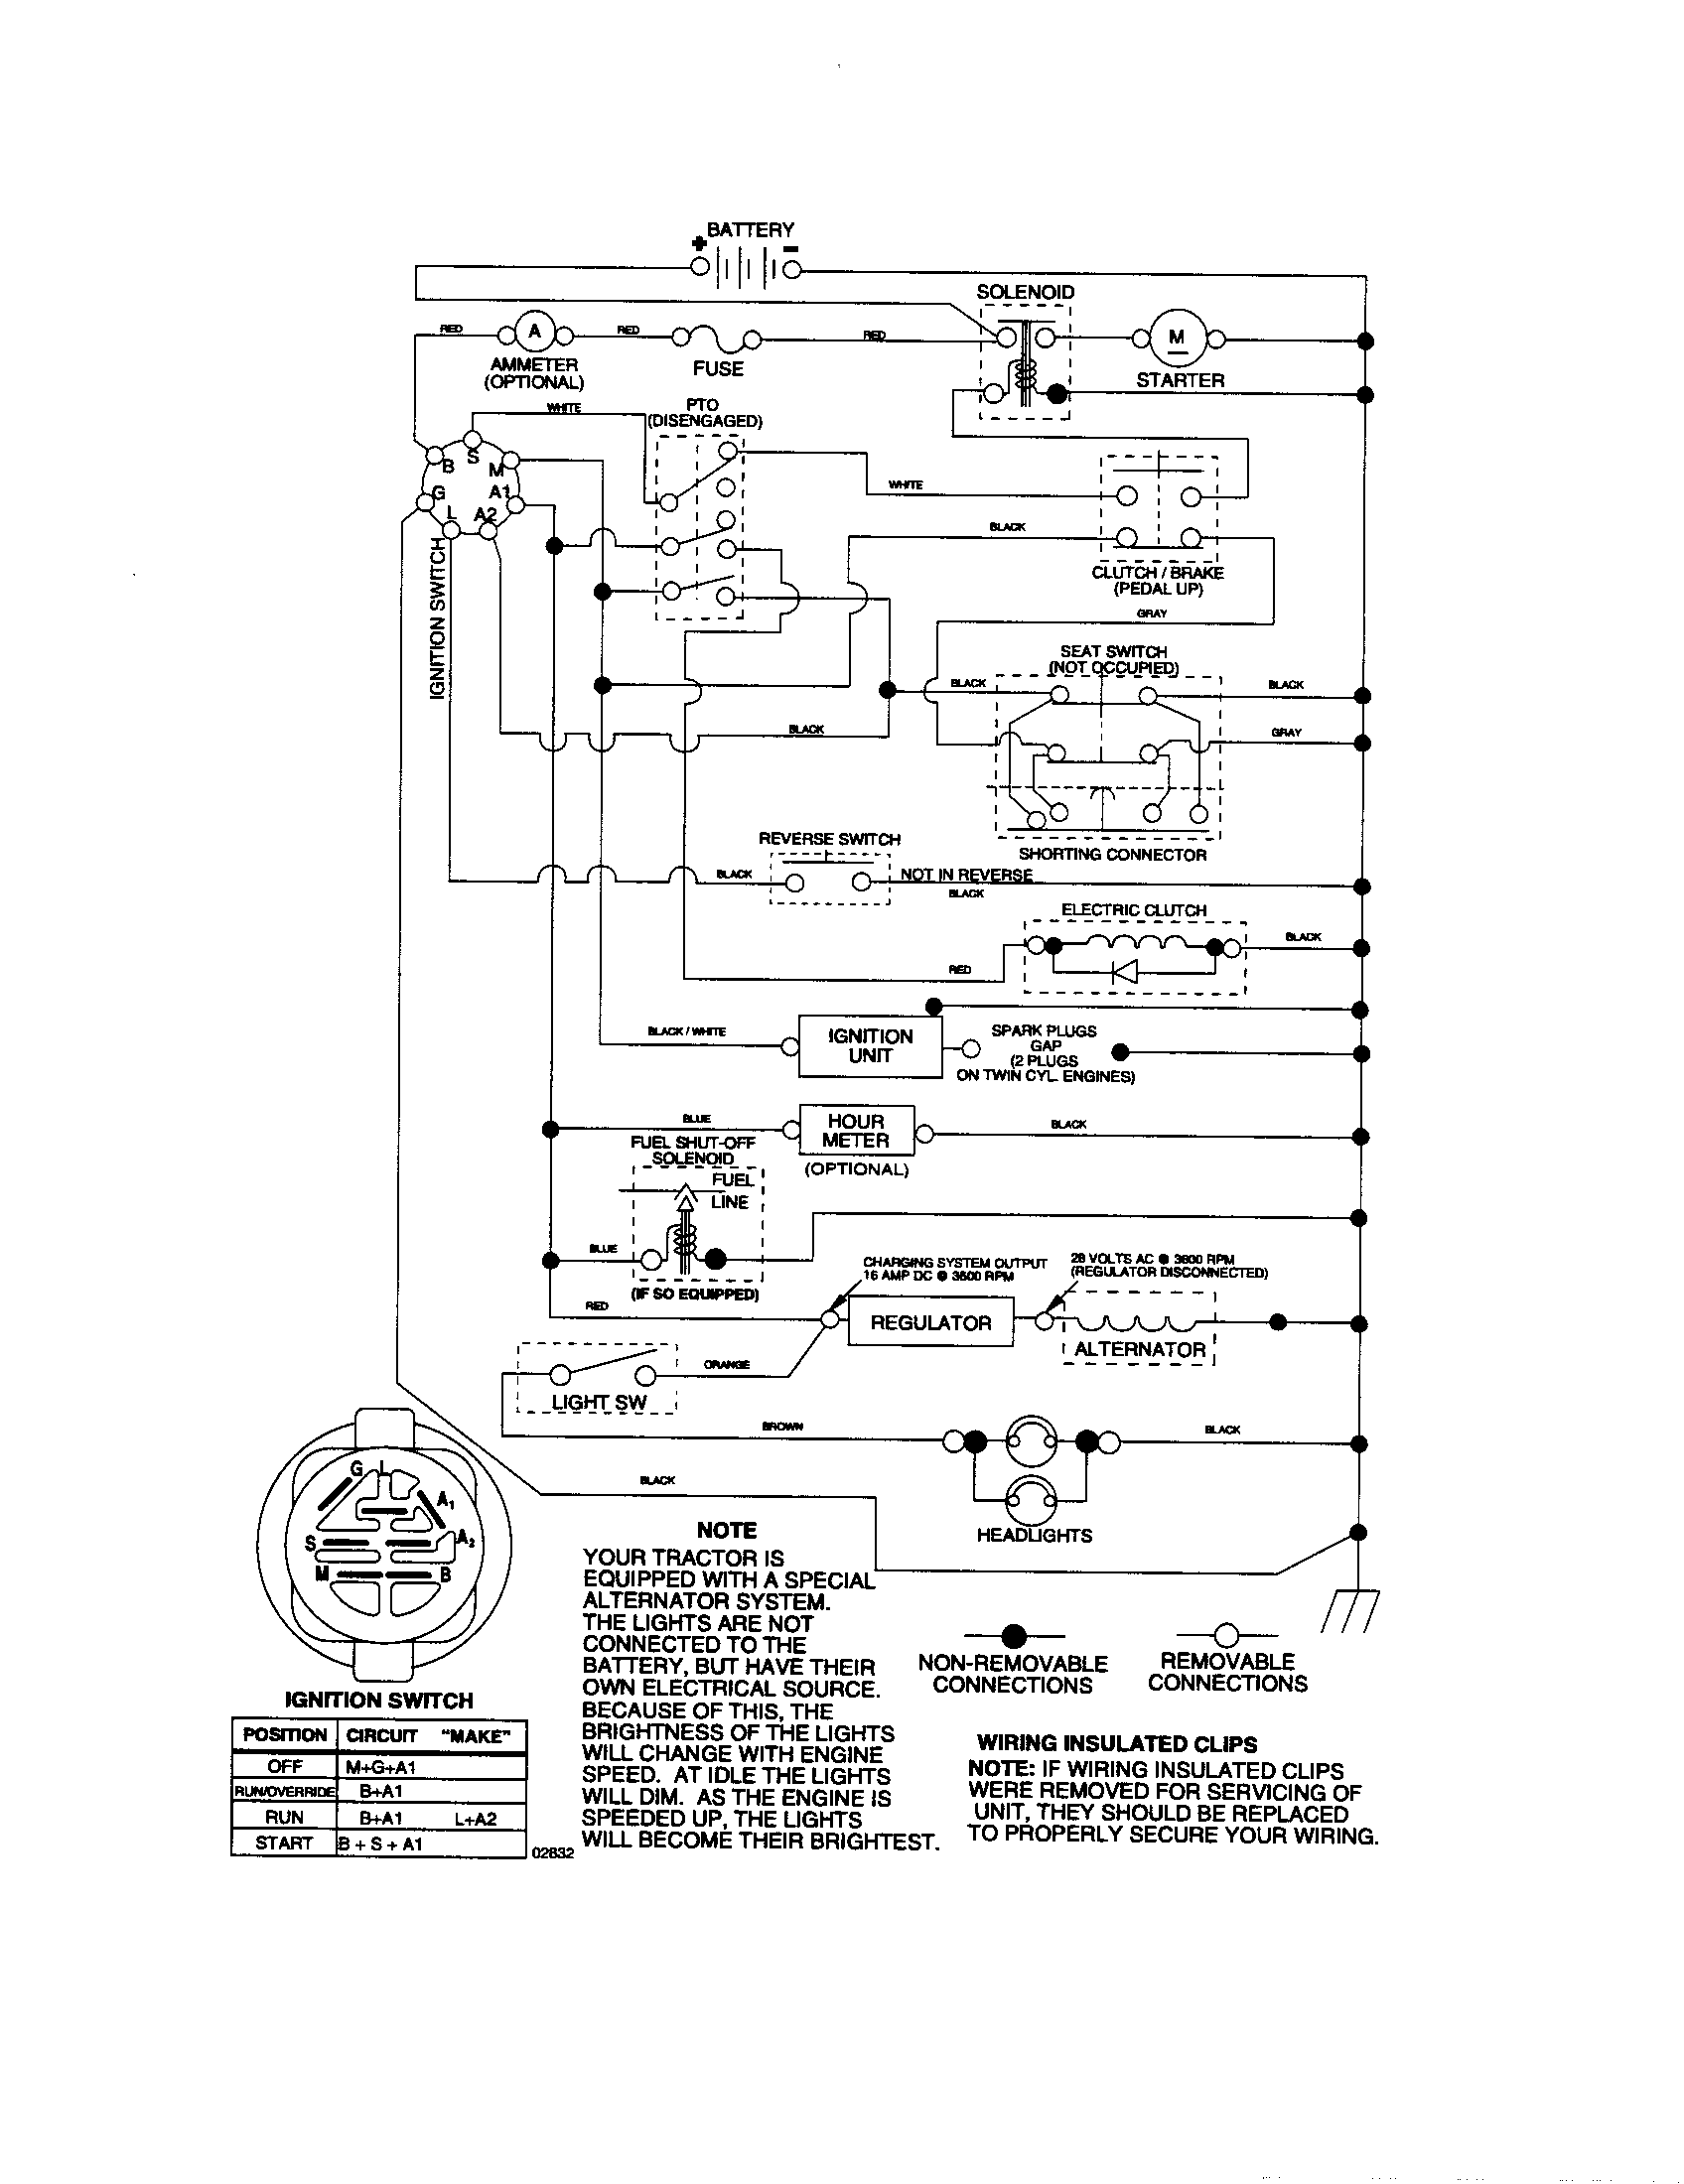 SCHEMATIC DIAGRAM Diagram & Parts List for Model GT2254